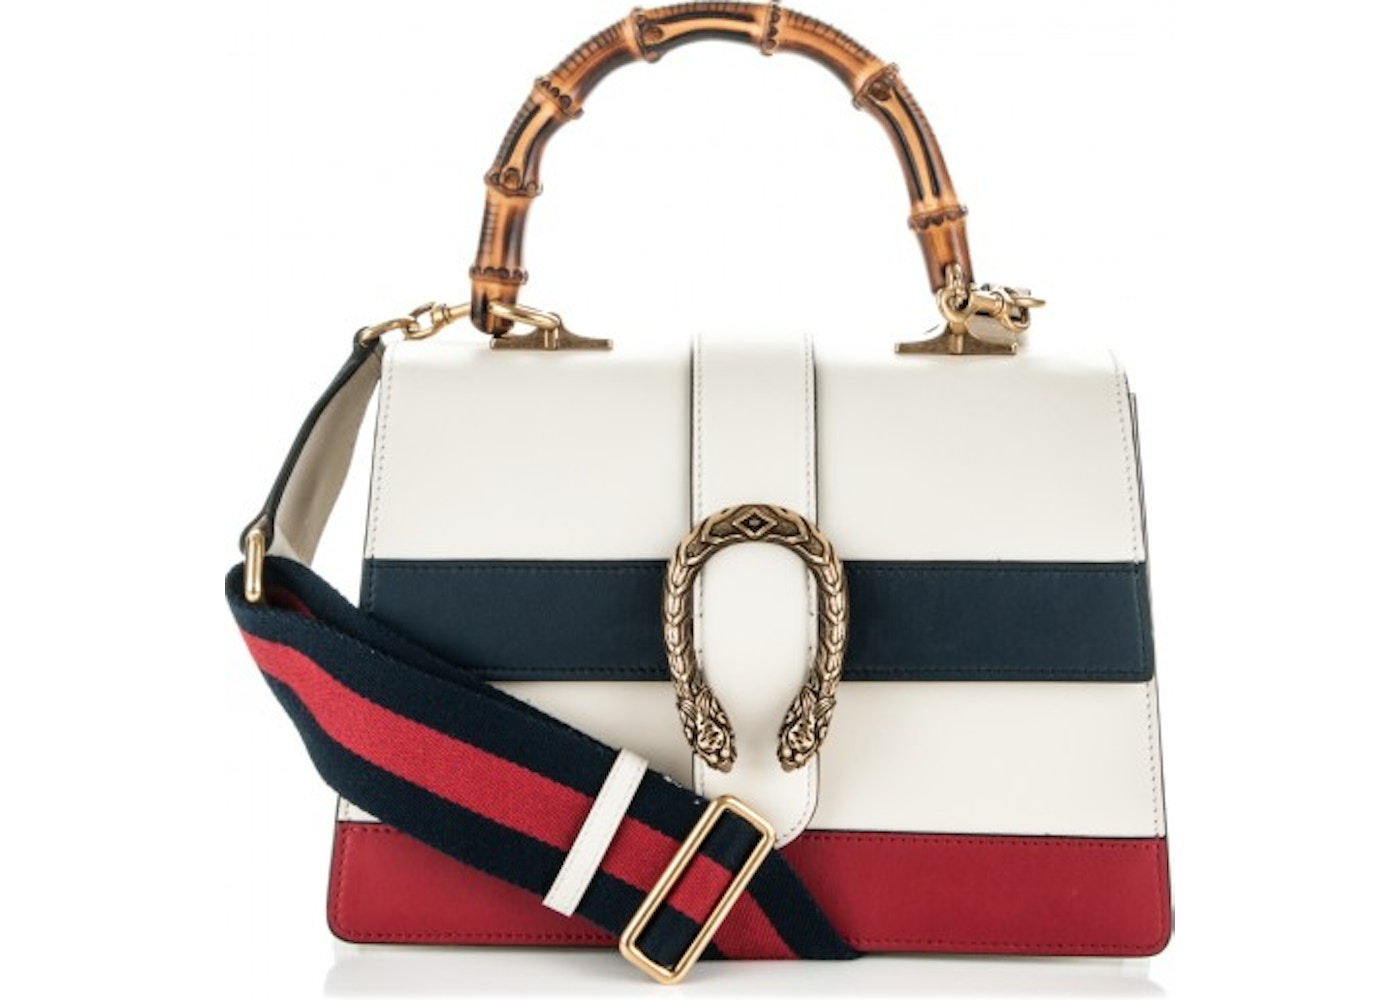 94e4abaf8c32 Gucci Dionysus Top Handle Medium White/Blue/Red. Medium White/Blue/Red